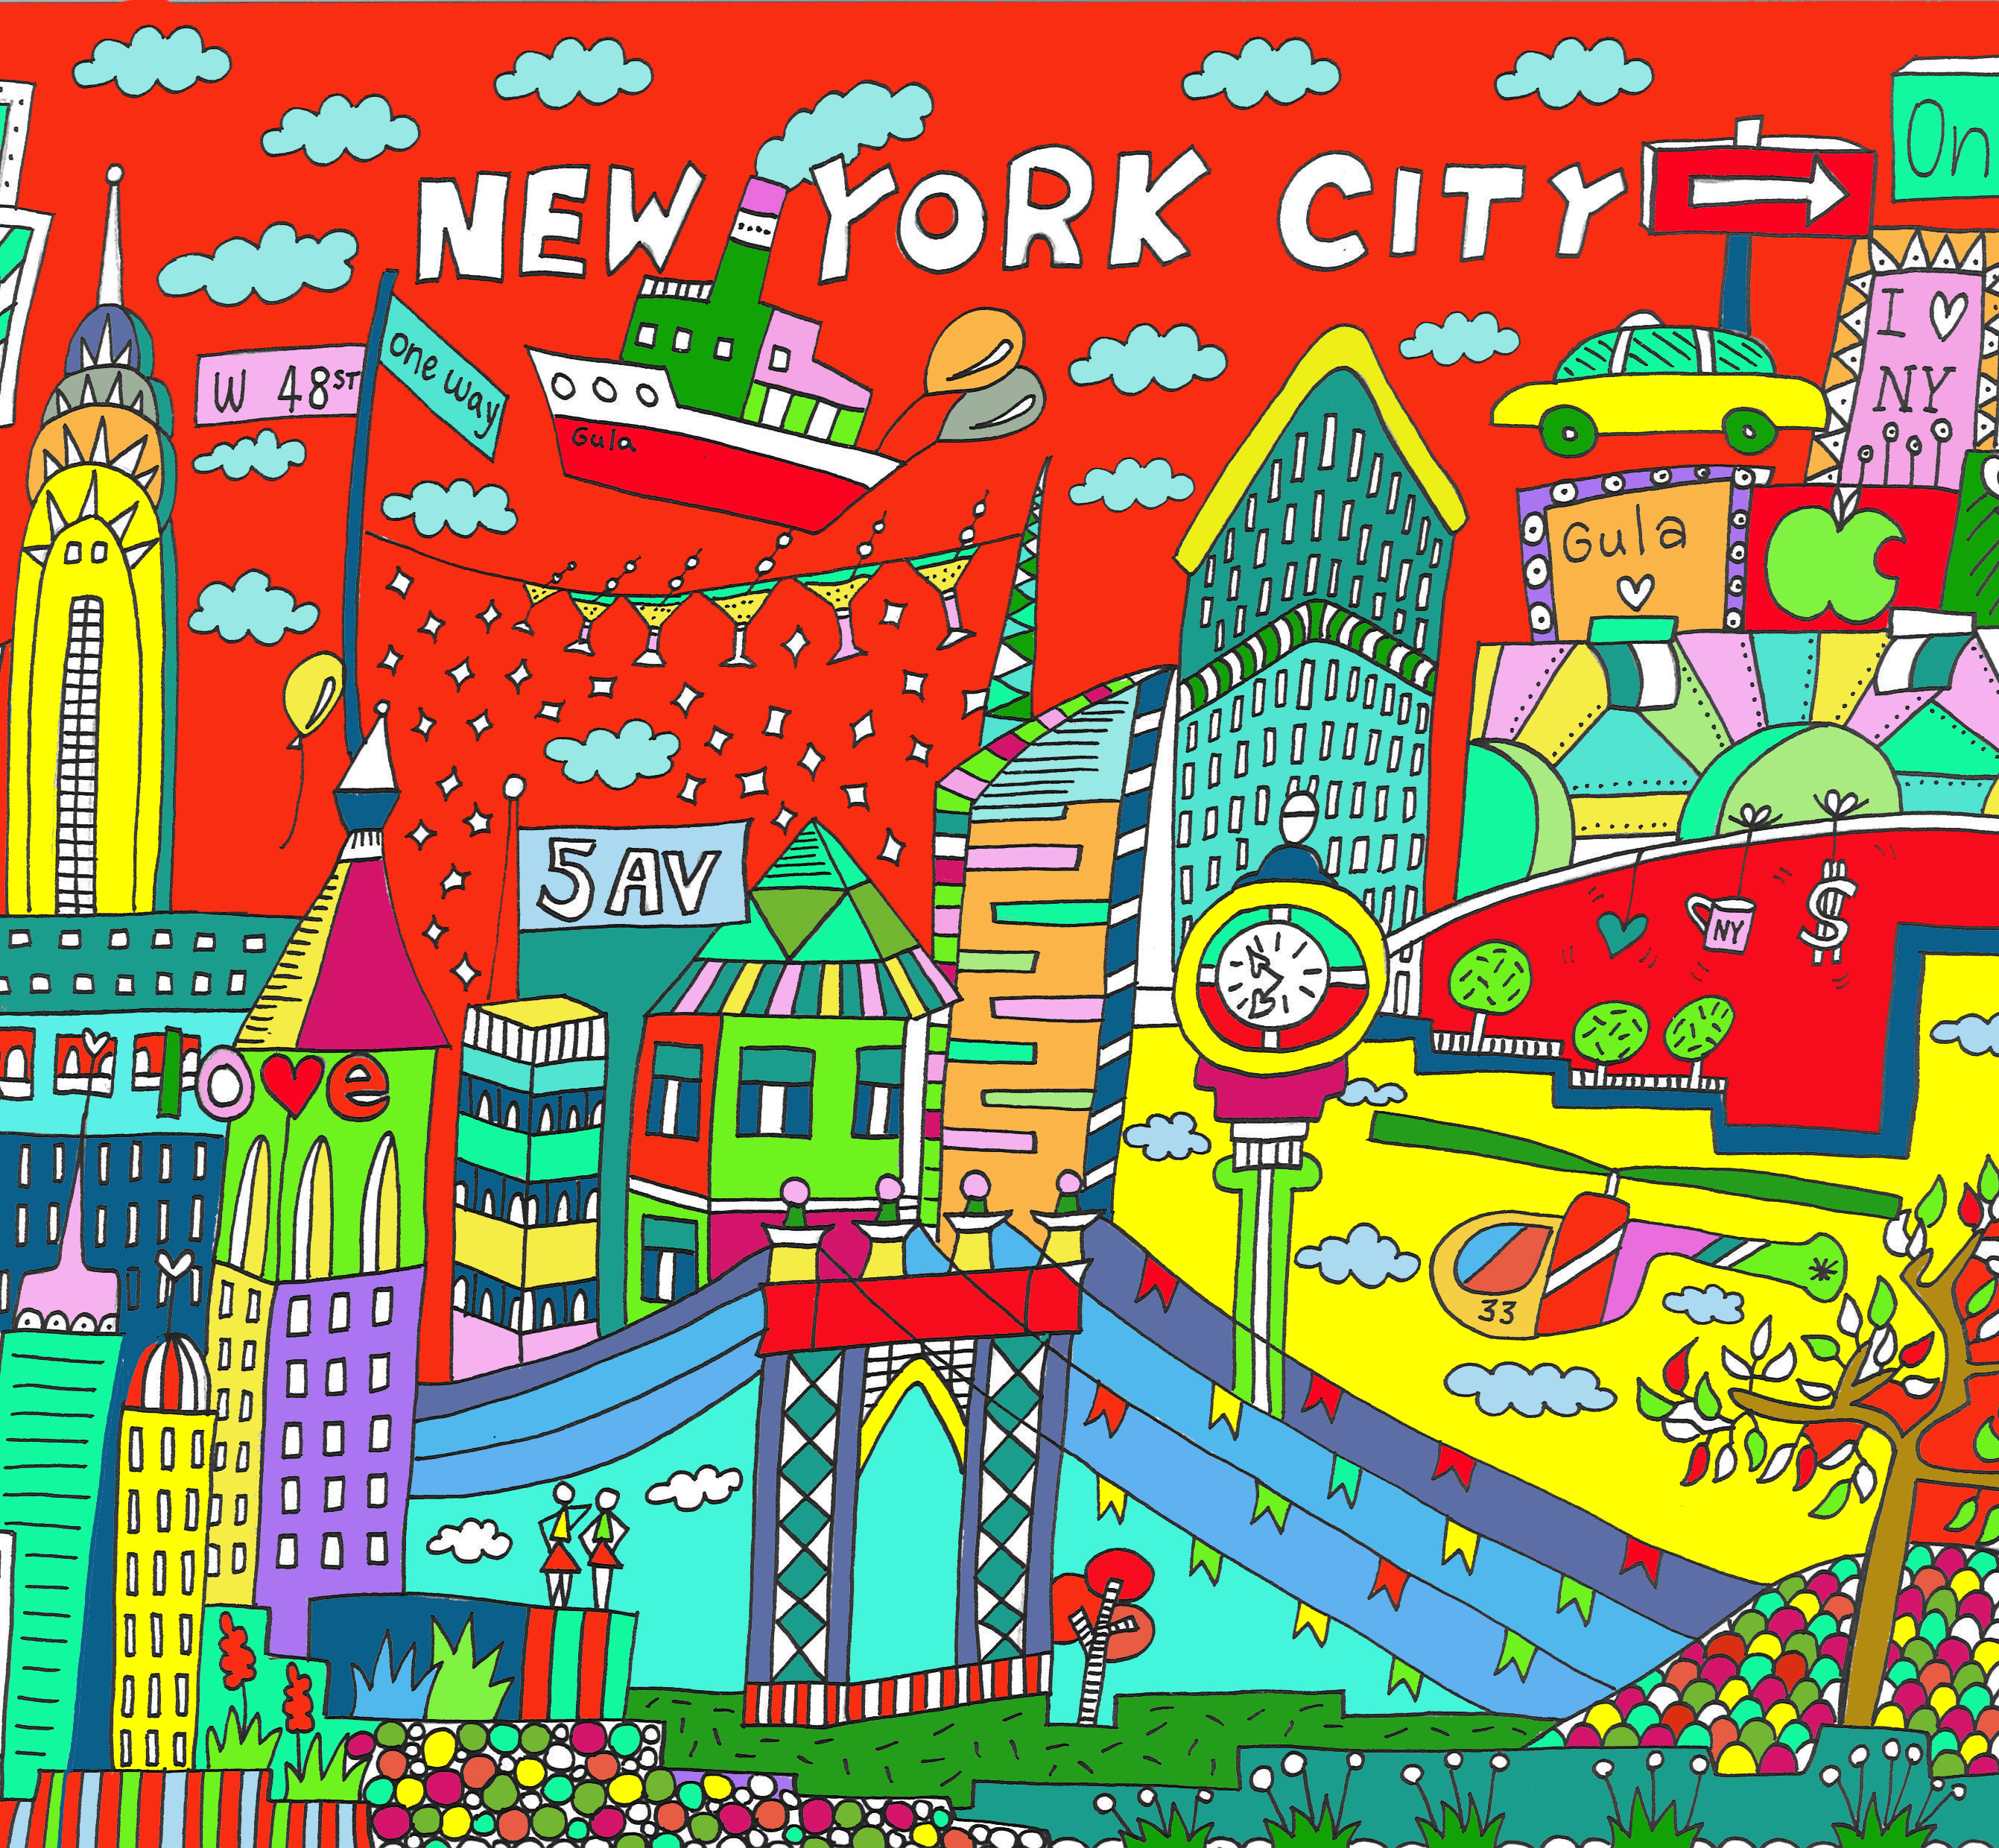 gula design: I love new york city